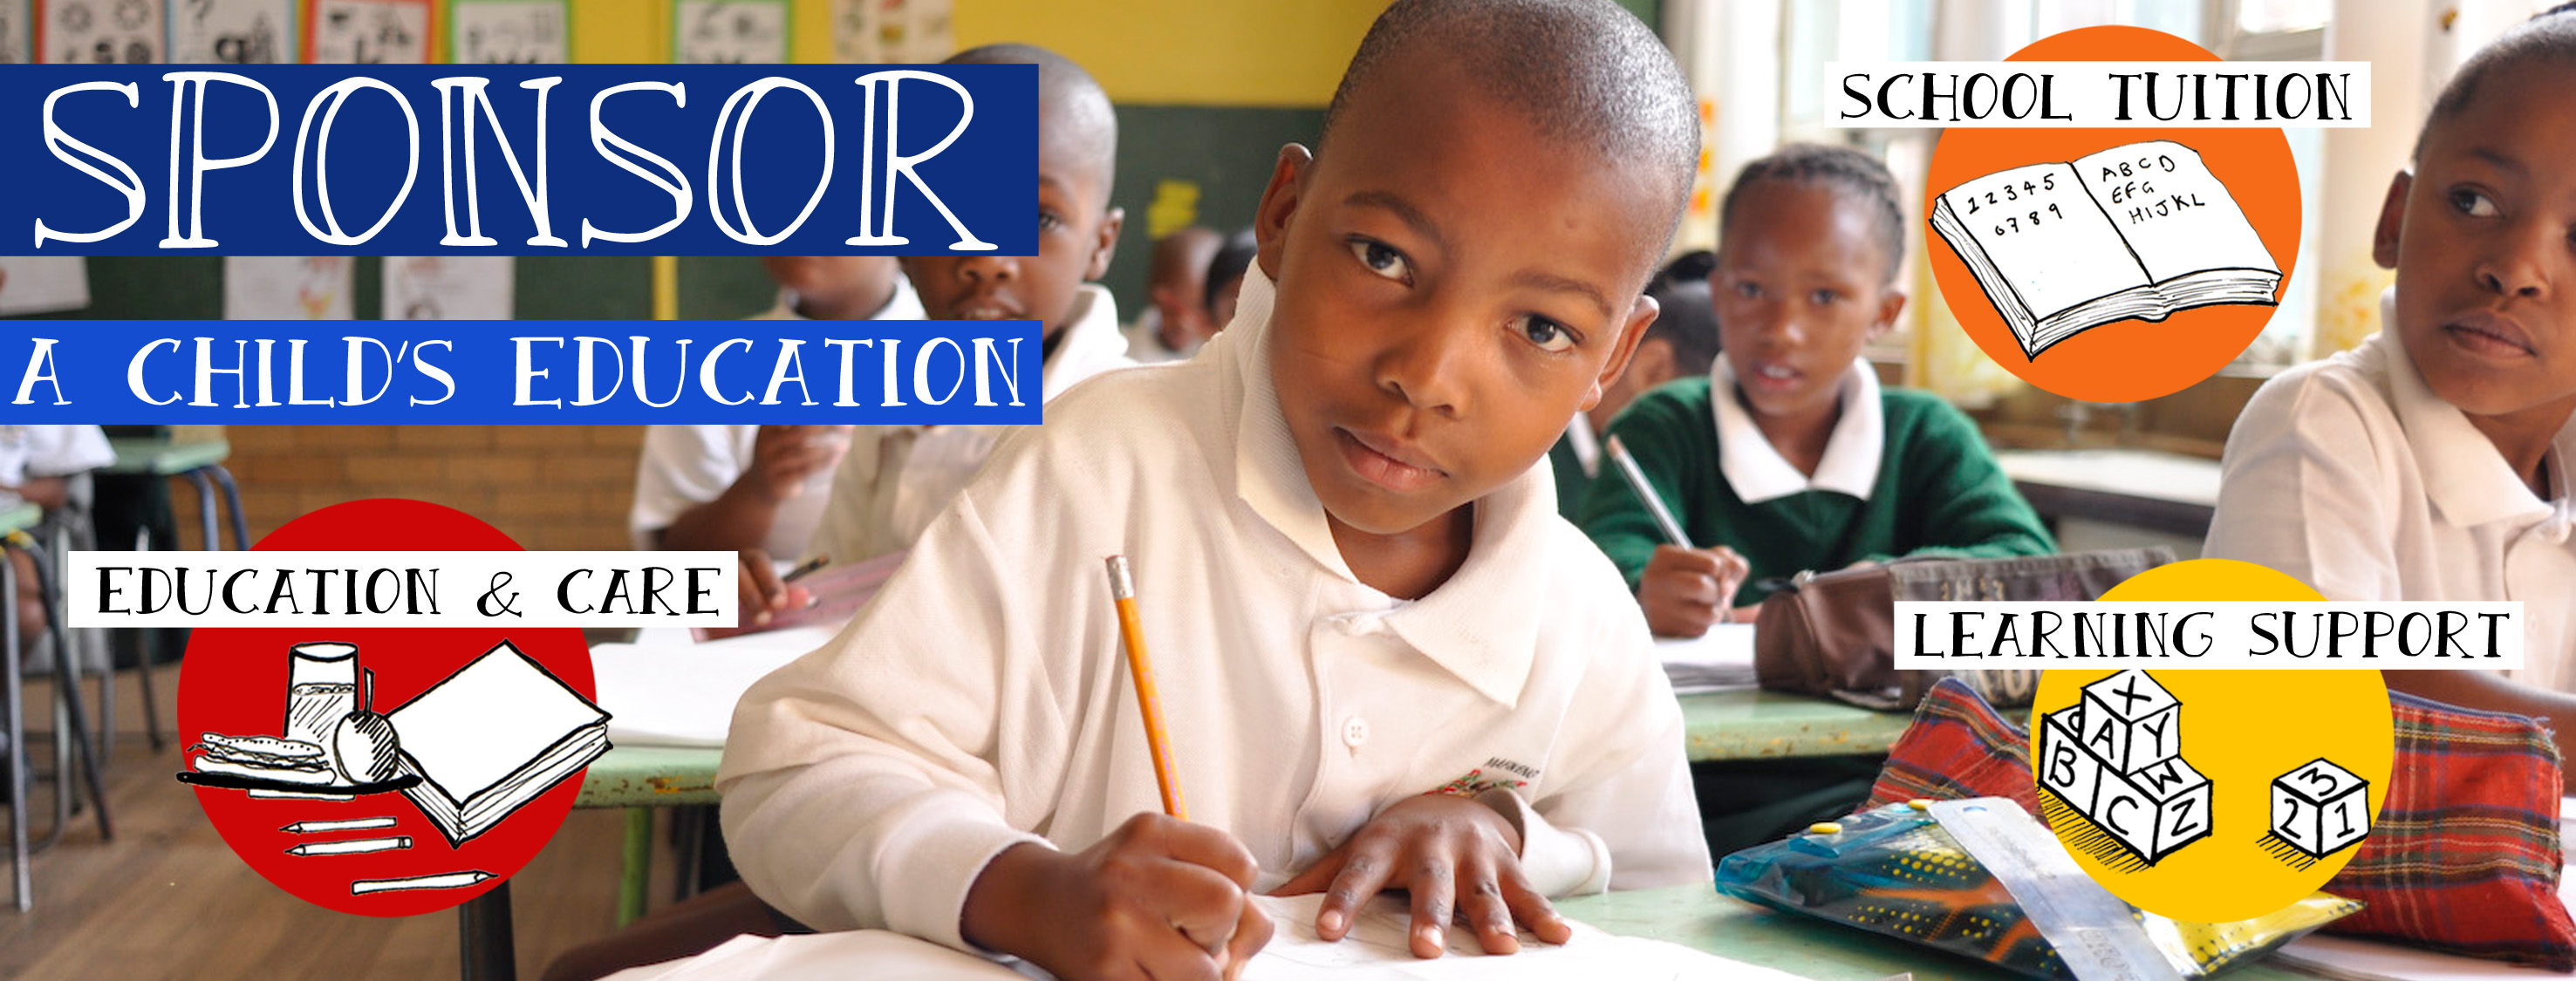 Sponsor the education of an African child | Sponsor a child in South Africa through the SOS Africa Charity